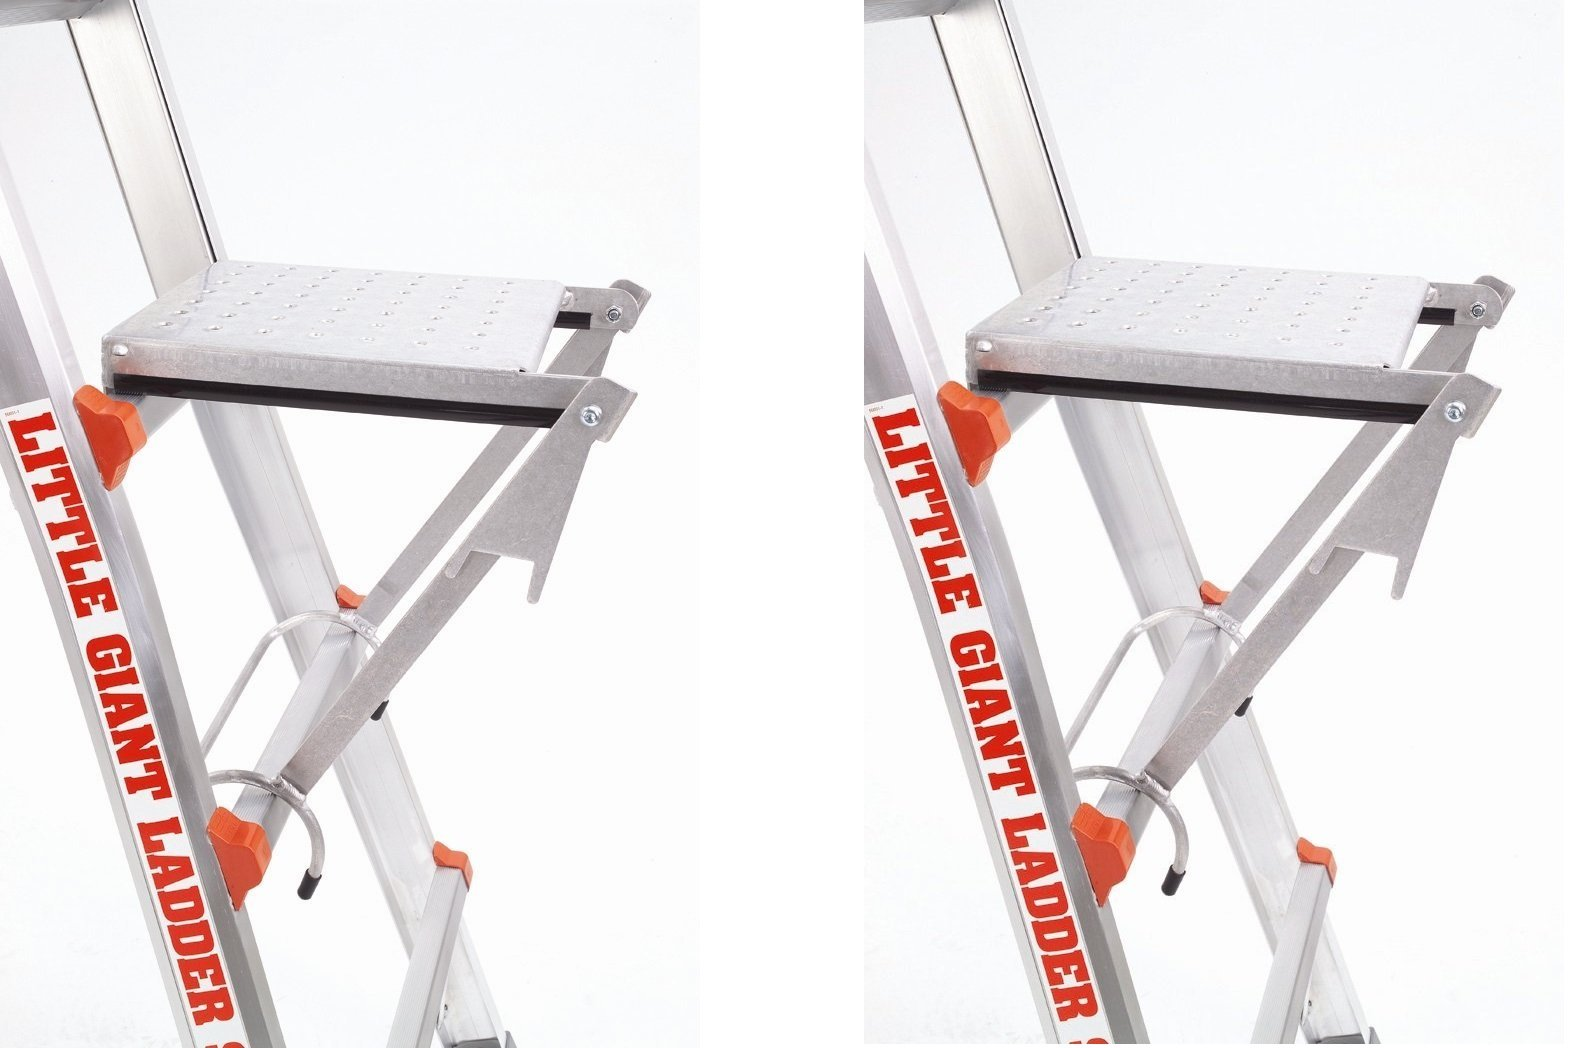 Little Giant Ladder Systems 10104 375-Pound Rated Work Platform Ladder Accessory (2 PACK)